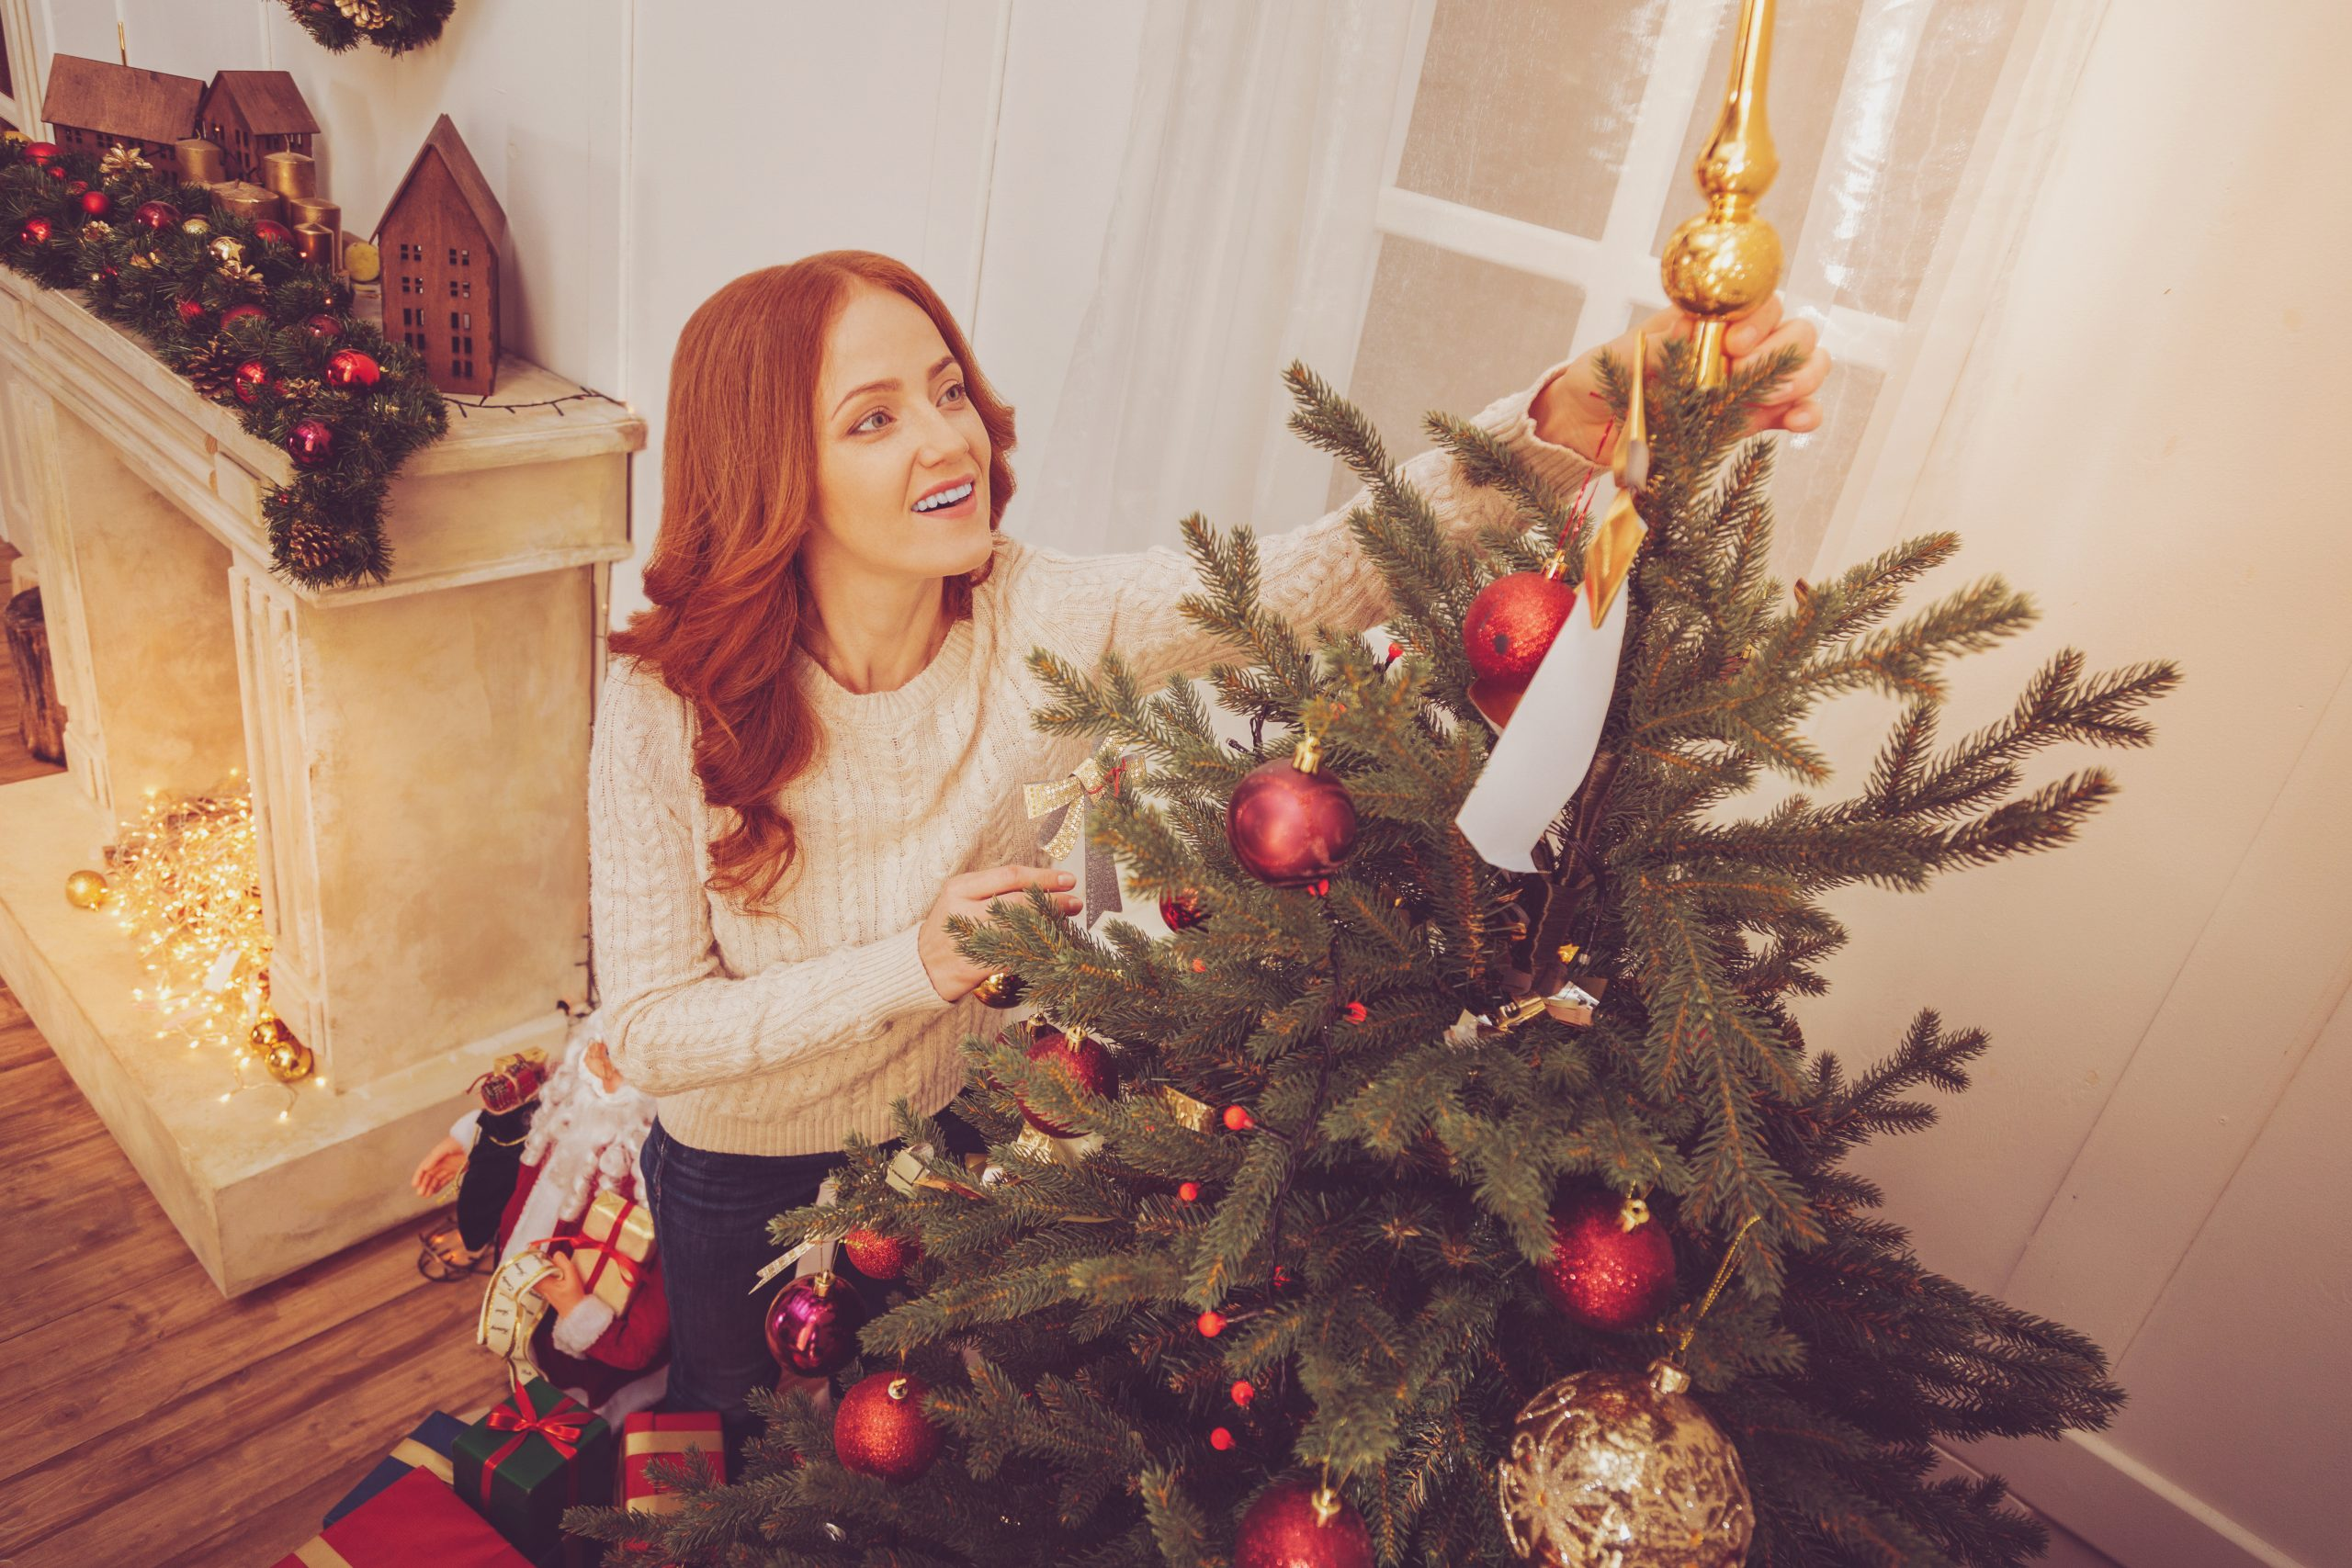 Last fine detail. Beautiful ginger-haired young woman standing near Christmas tree and putting a topper on it while smiling happily